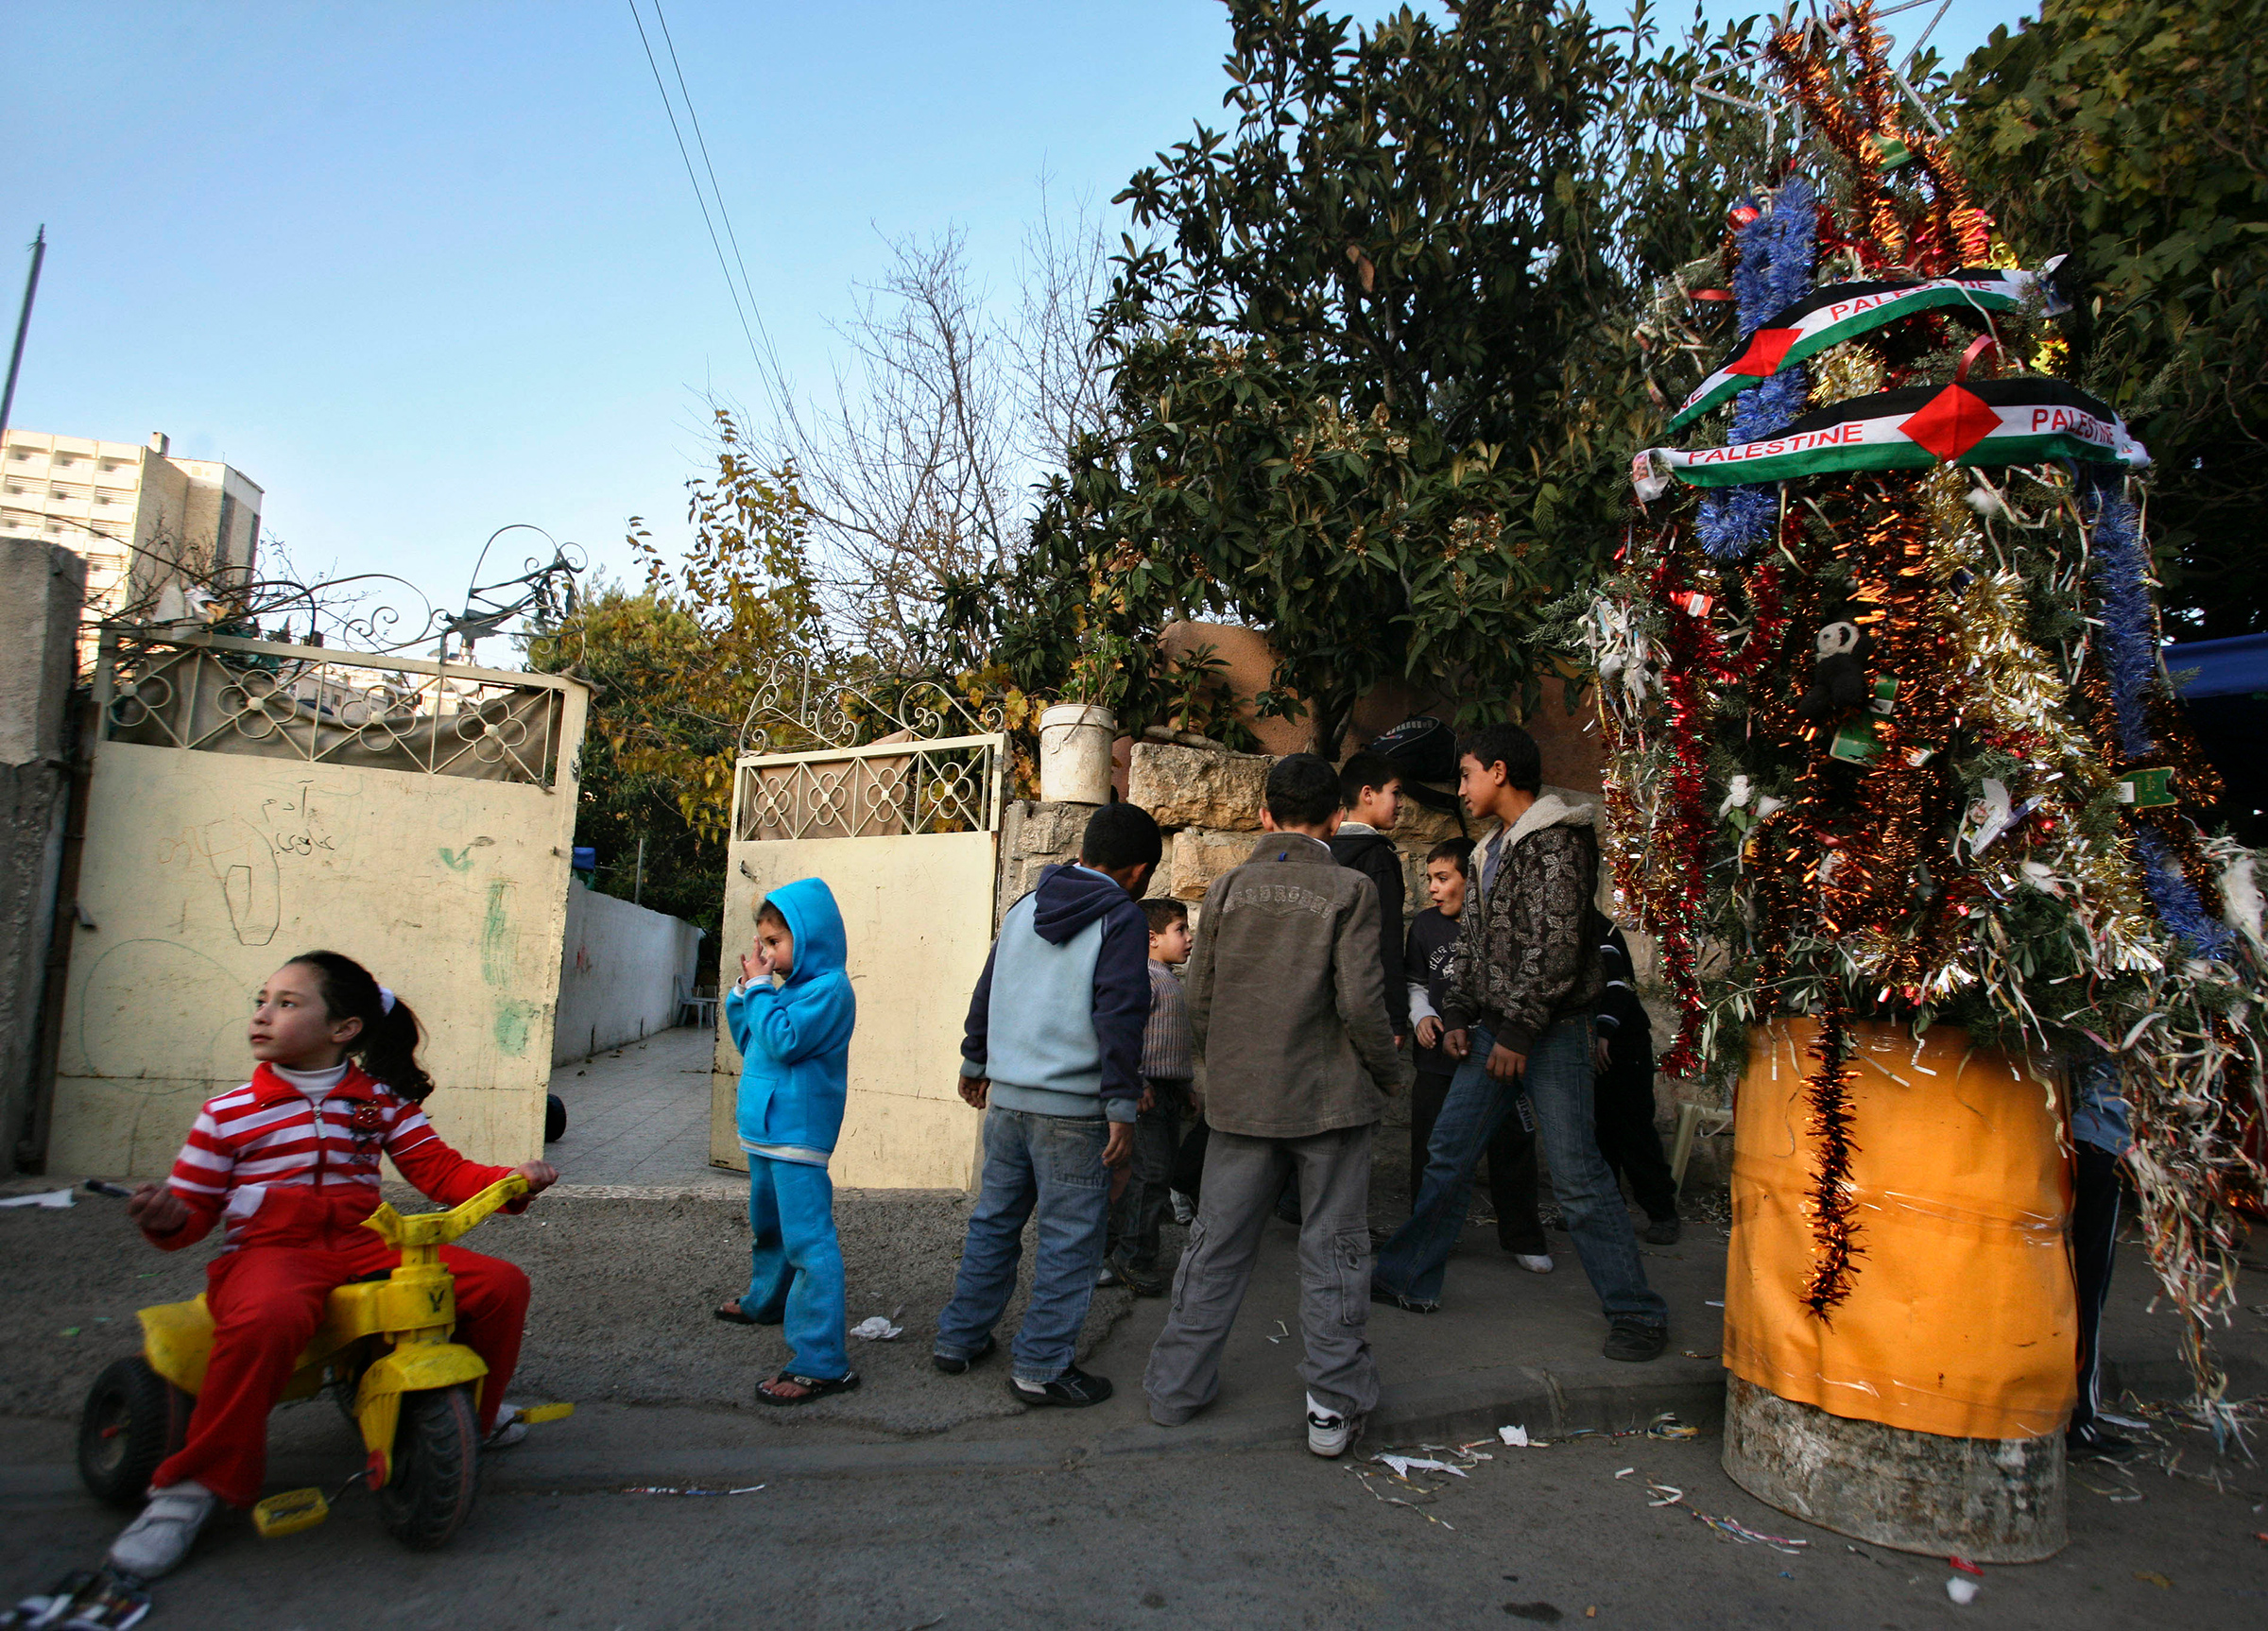 Palestinian children gather around a Christmas Tree during a ceremony in the East Jerusalem neighborhood of Sheikh Jarrah on Dec. 23, 2009.